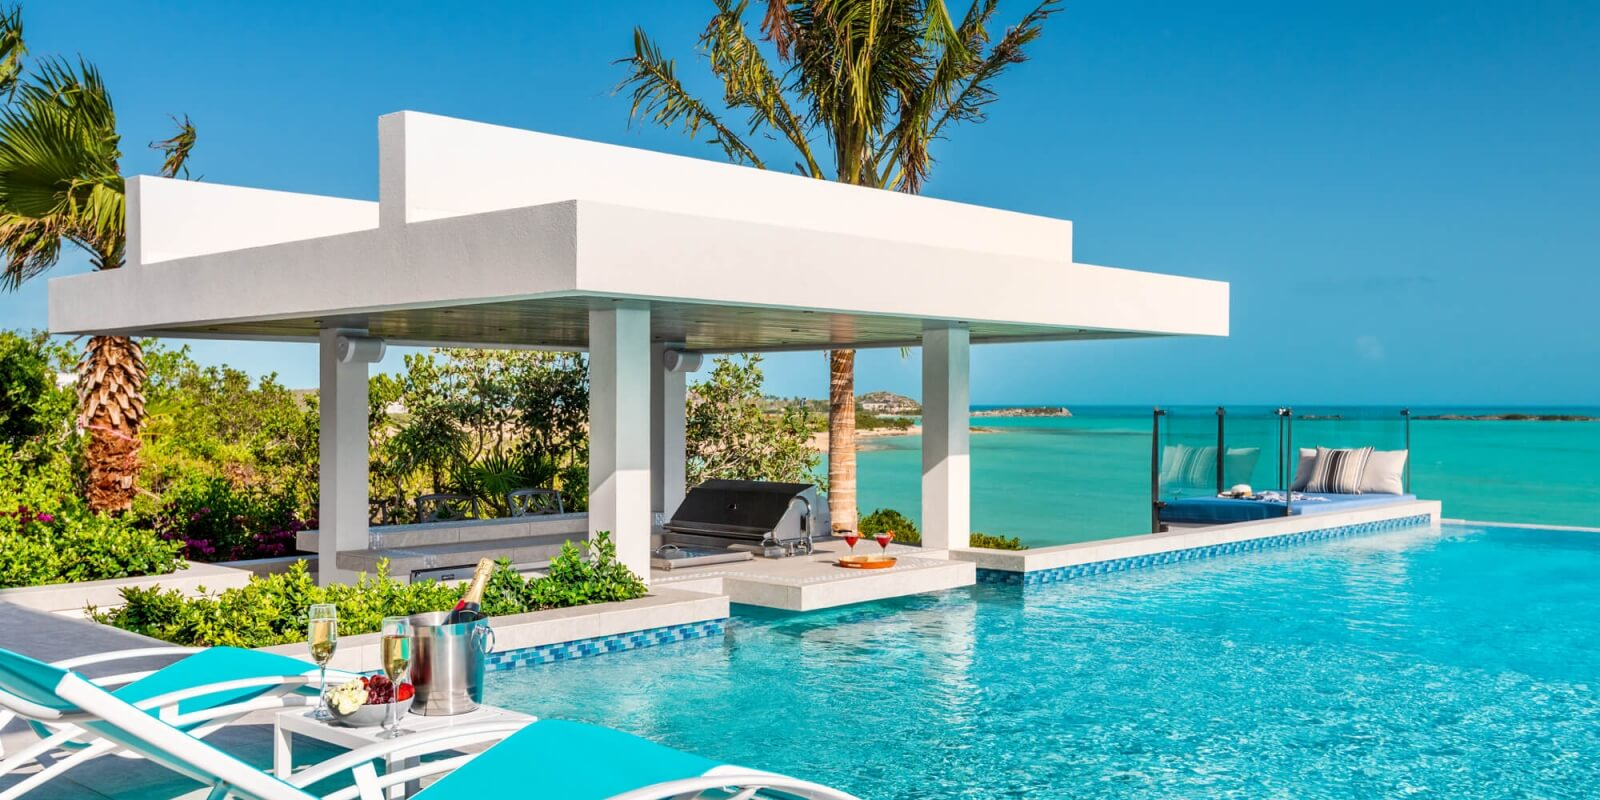 Turks and caicos waterfront condo rental: A Place Not To Be Missed